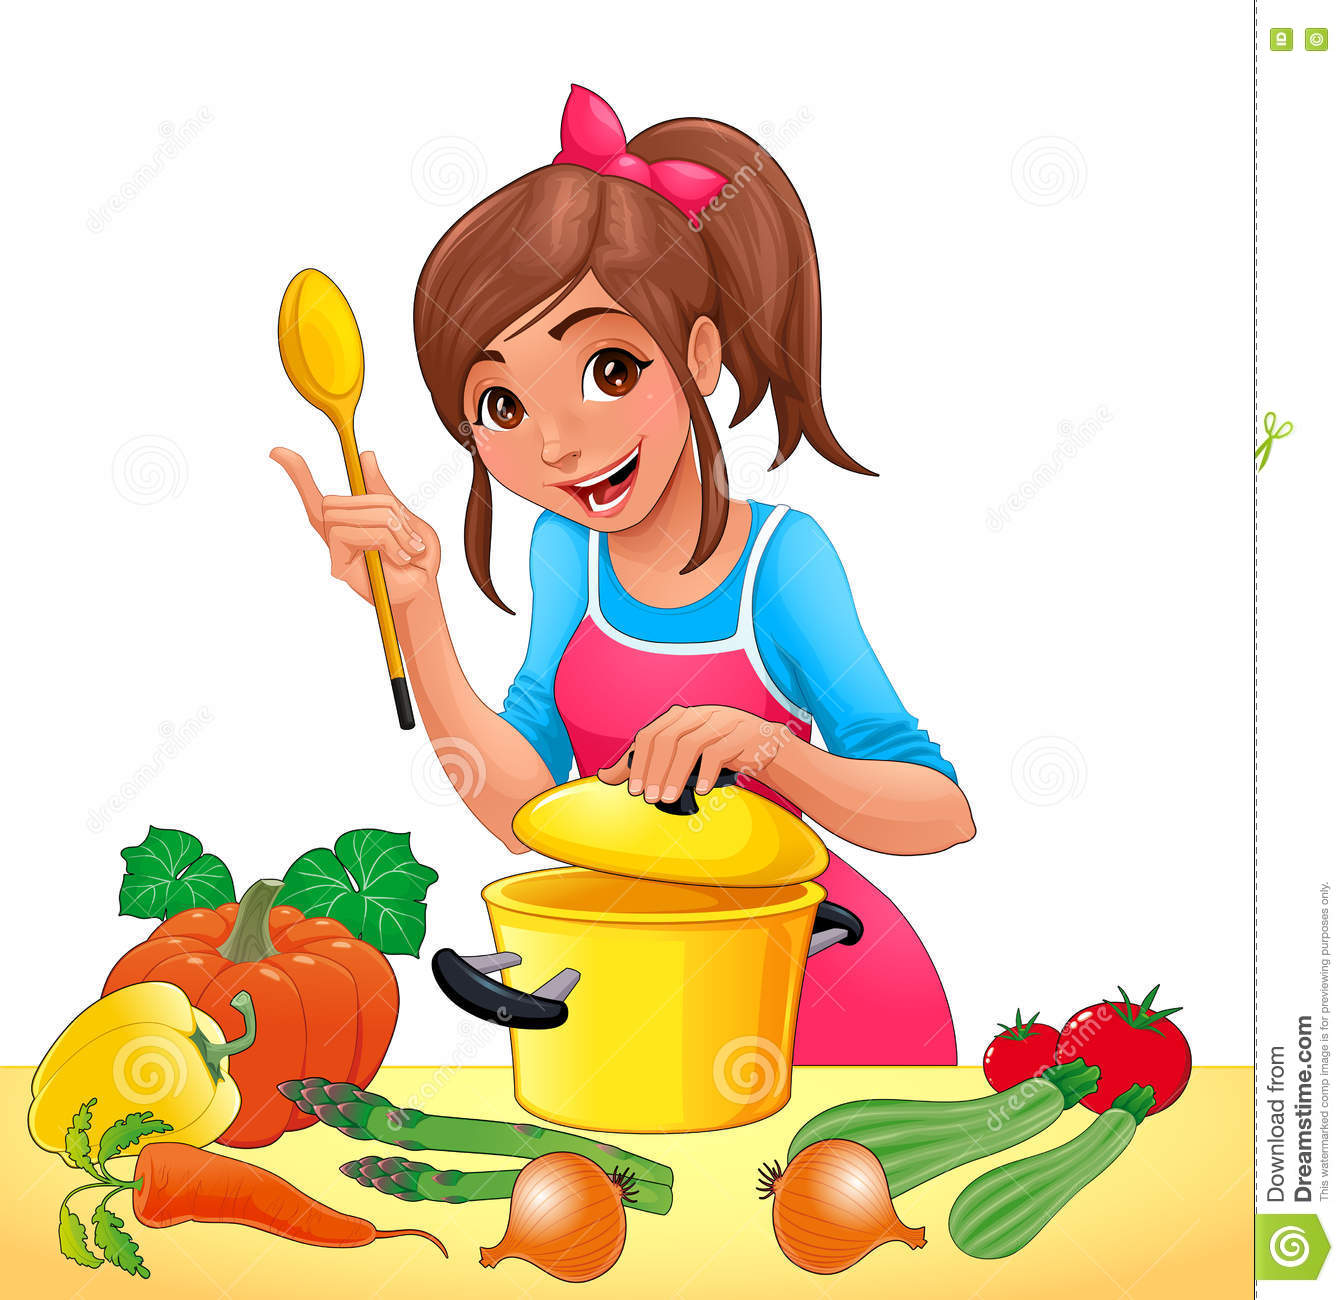 Cooking Kitchen Clip Art: Girl With Is Cooking With Several Vegetables Stock Vector